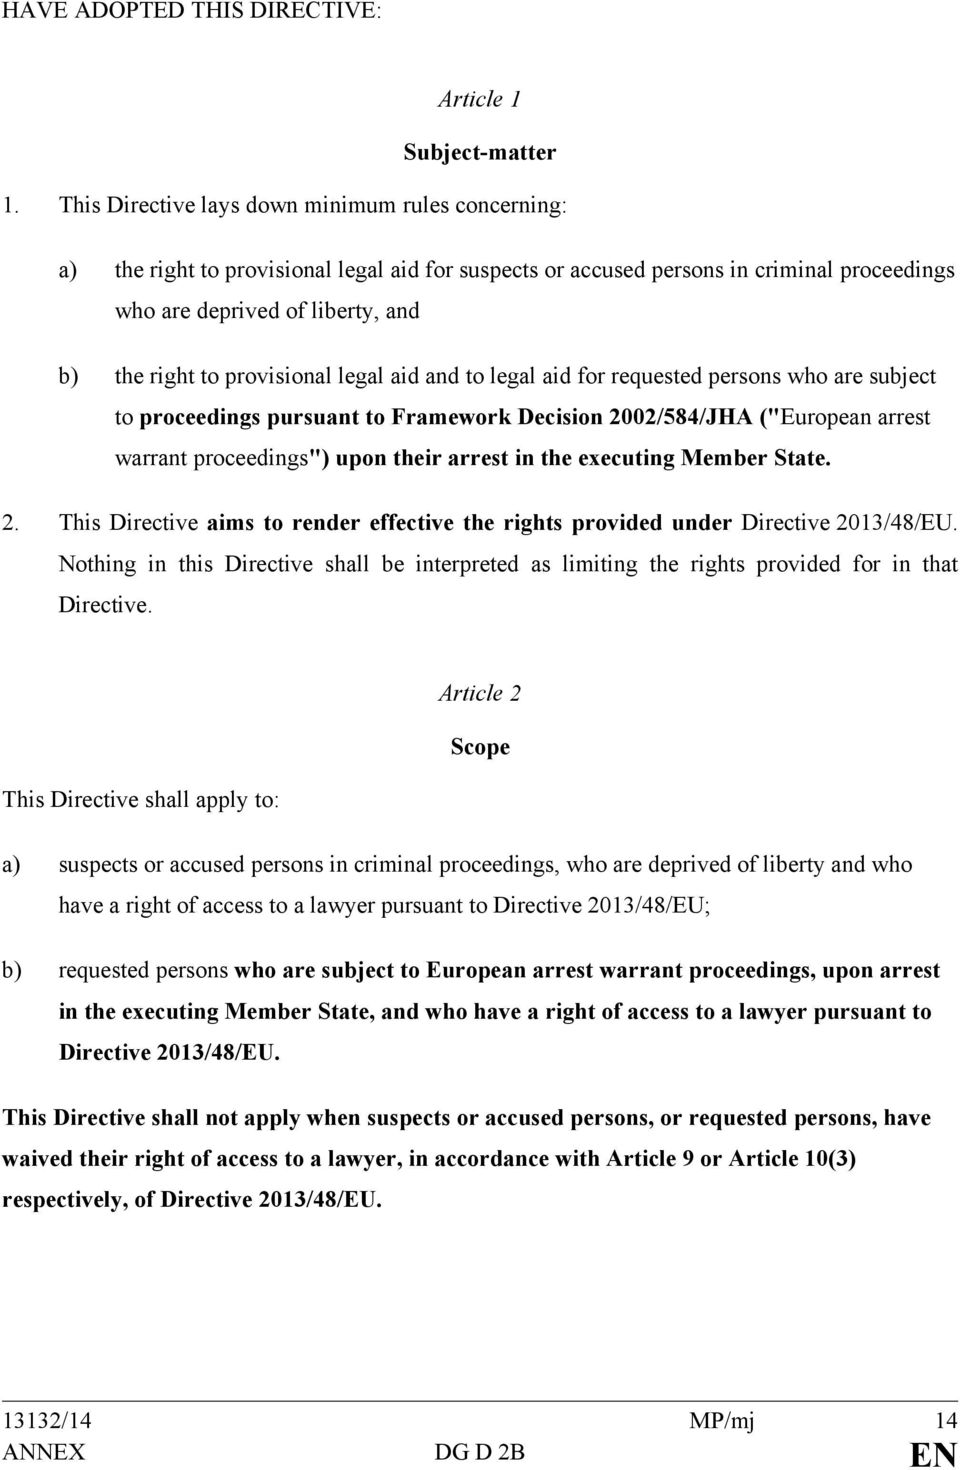 "provisional legal aid and to legal aid for requested persons who are subject to proceedings pursuant to Framework Decision 2002/584/JHA (""European arrest warrant proceedings"") upon their arrest in"